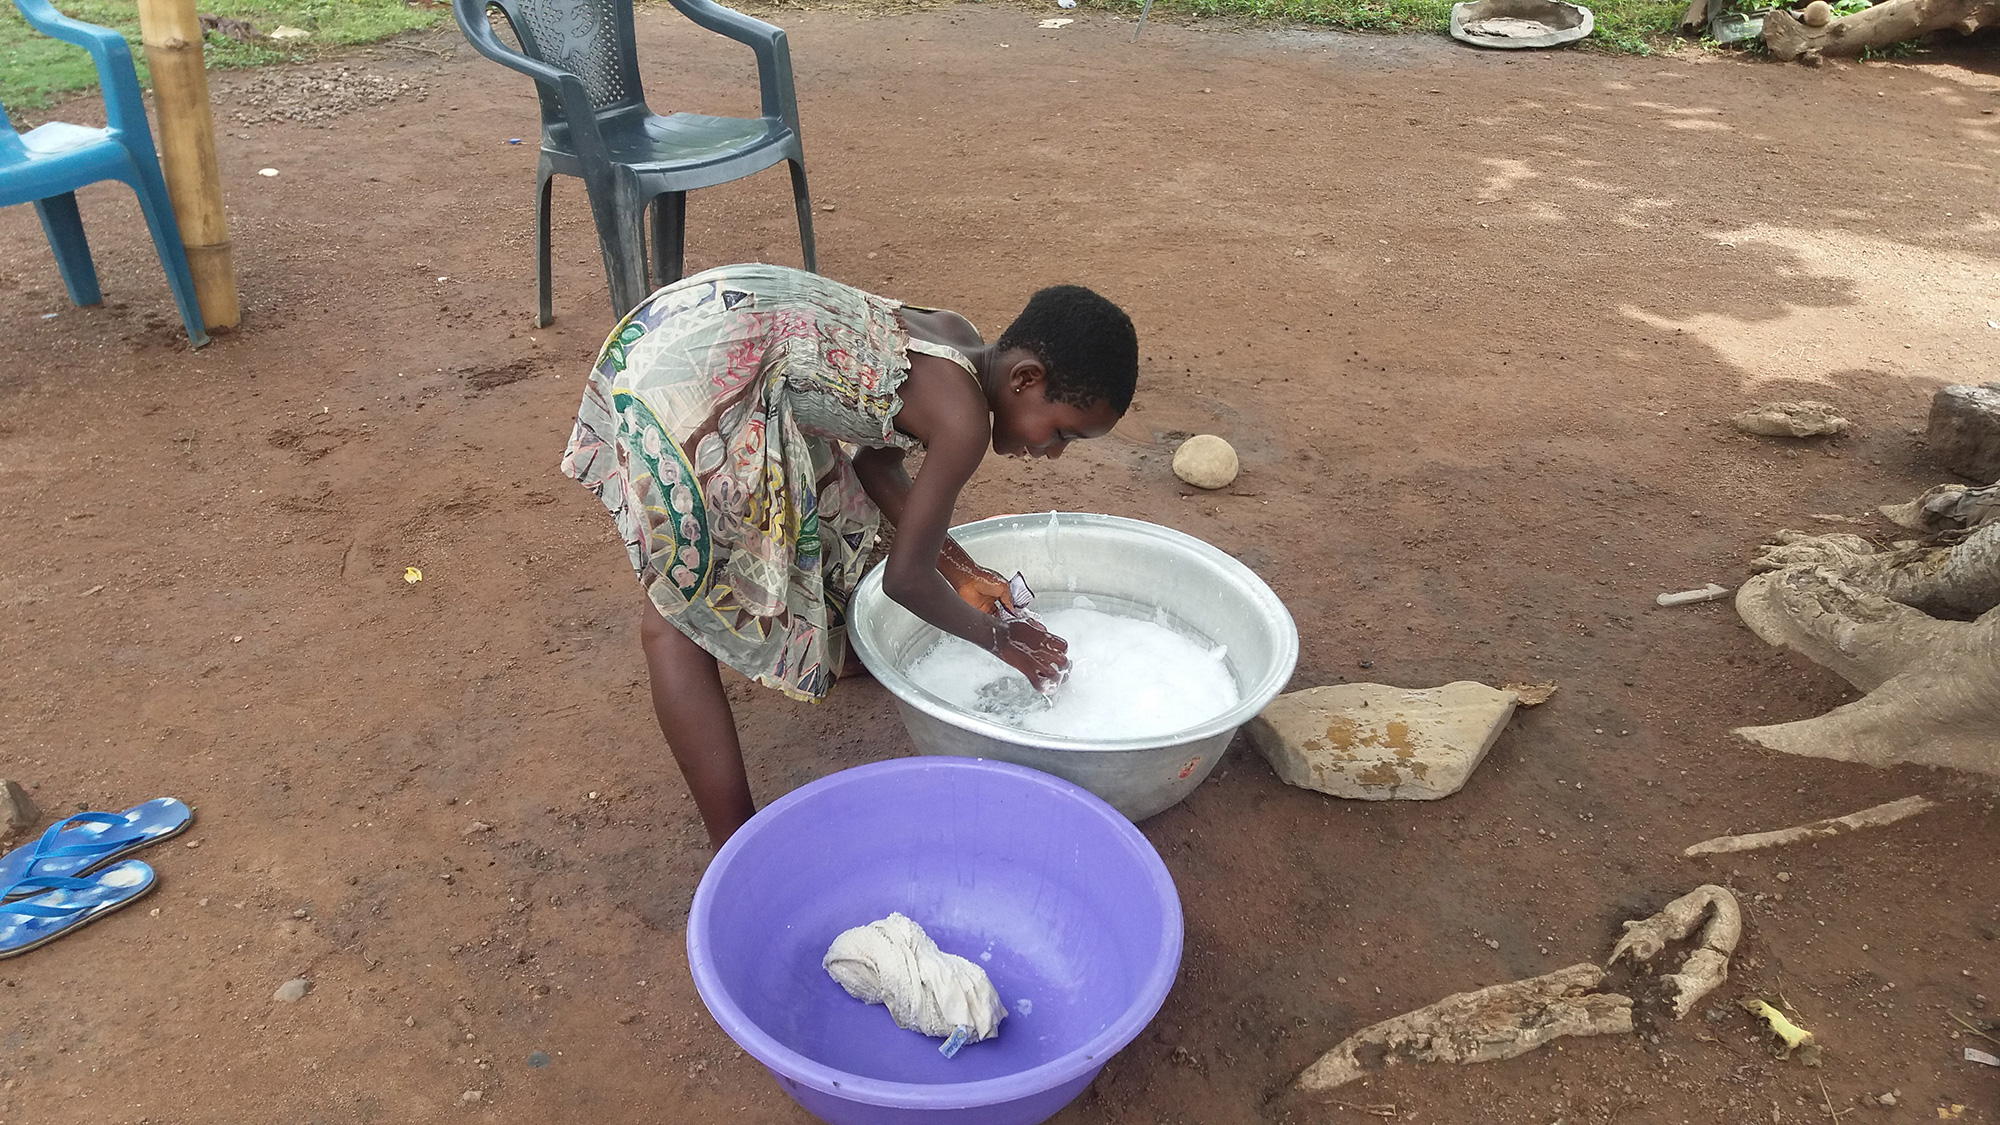 Girls usually help their parents by hand washing clothes during the weekends in sub-Saharan African countries. Electricity and washing machines are extremely rare.